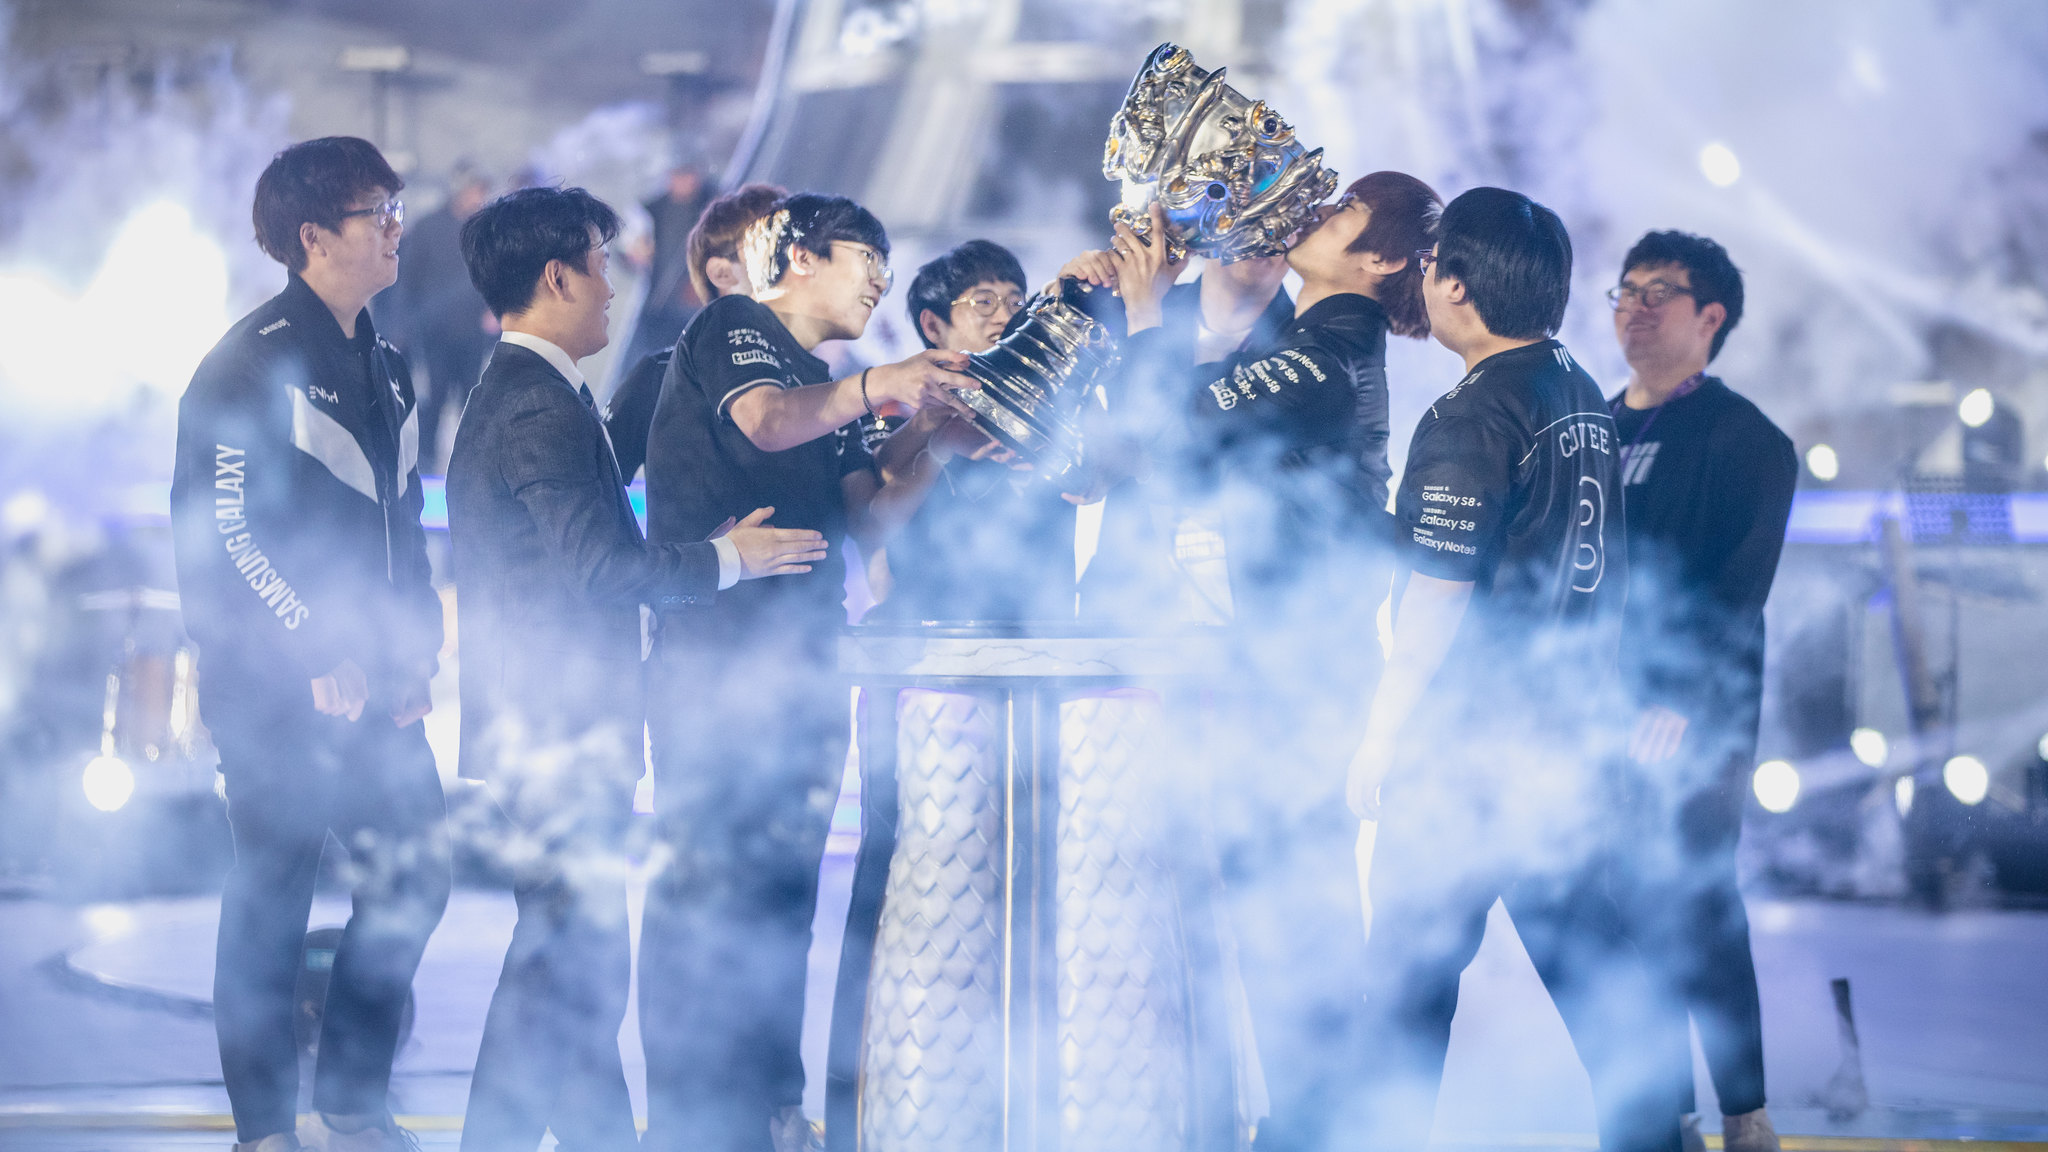 The Summoner's Cup is the ultimate prize in competitive League of Legends.